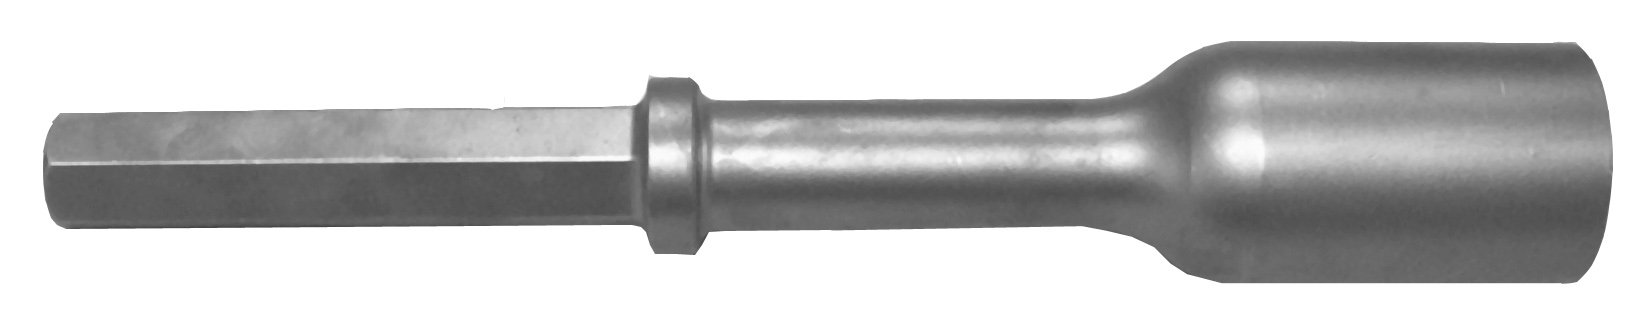 Champion Chisel, 1-1/4 by 6-Inch Hex Shank Ground Rod Driver - Used for up to 1-Inch Rods